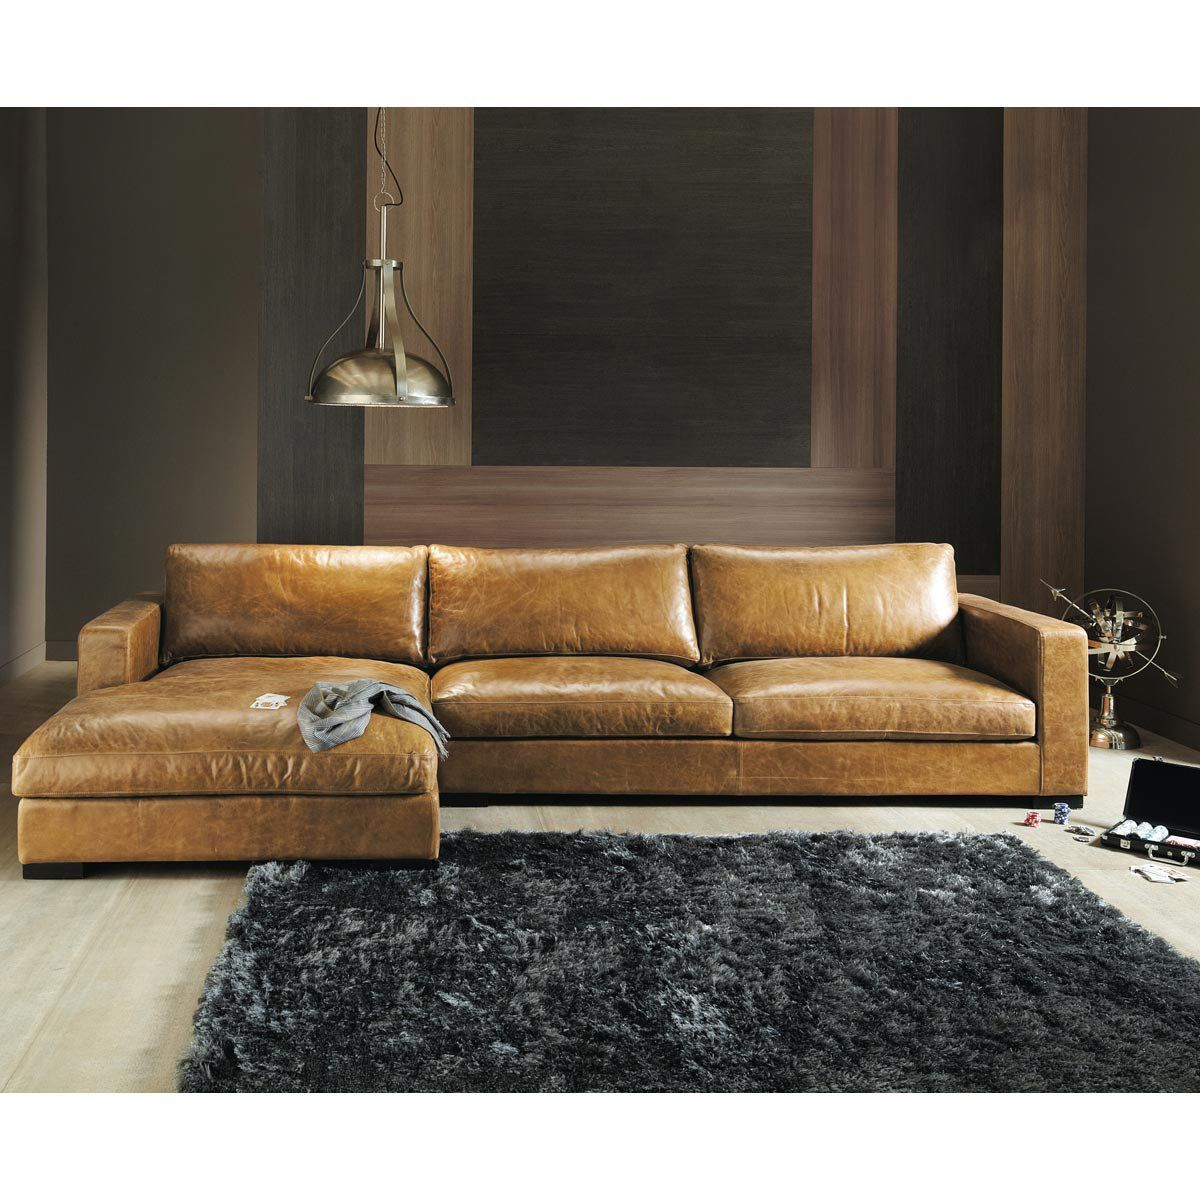 Braunes Sofa Vintage Brown Leather Sectional Corner Sofa Seats 3 4